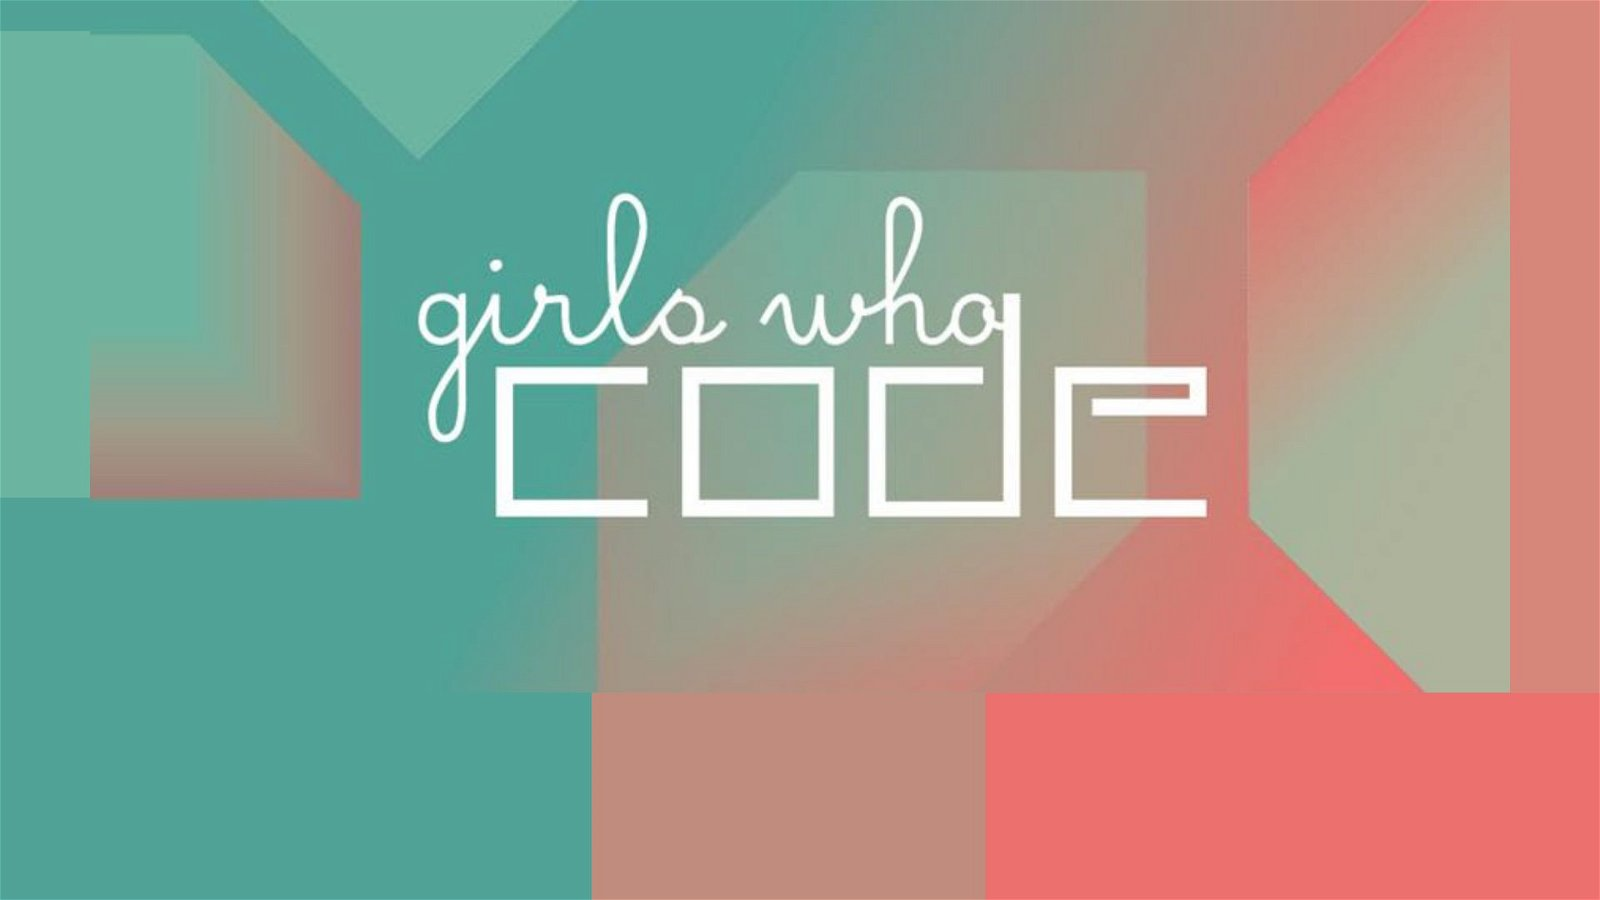 Blizzard Entertainment is Heating Up with Girls Who Code and Overwatch Summer Games 1